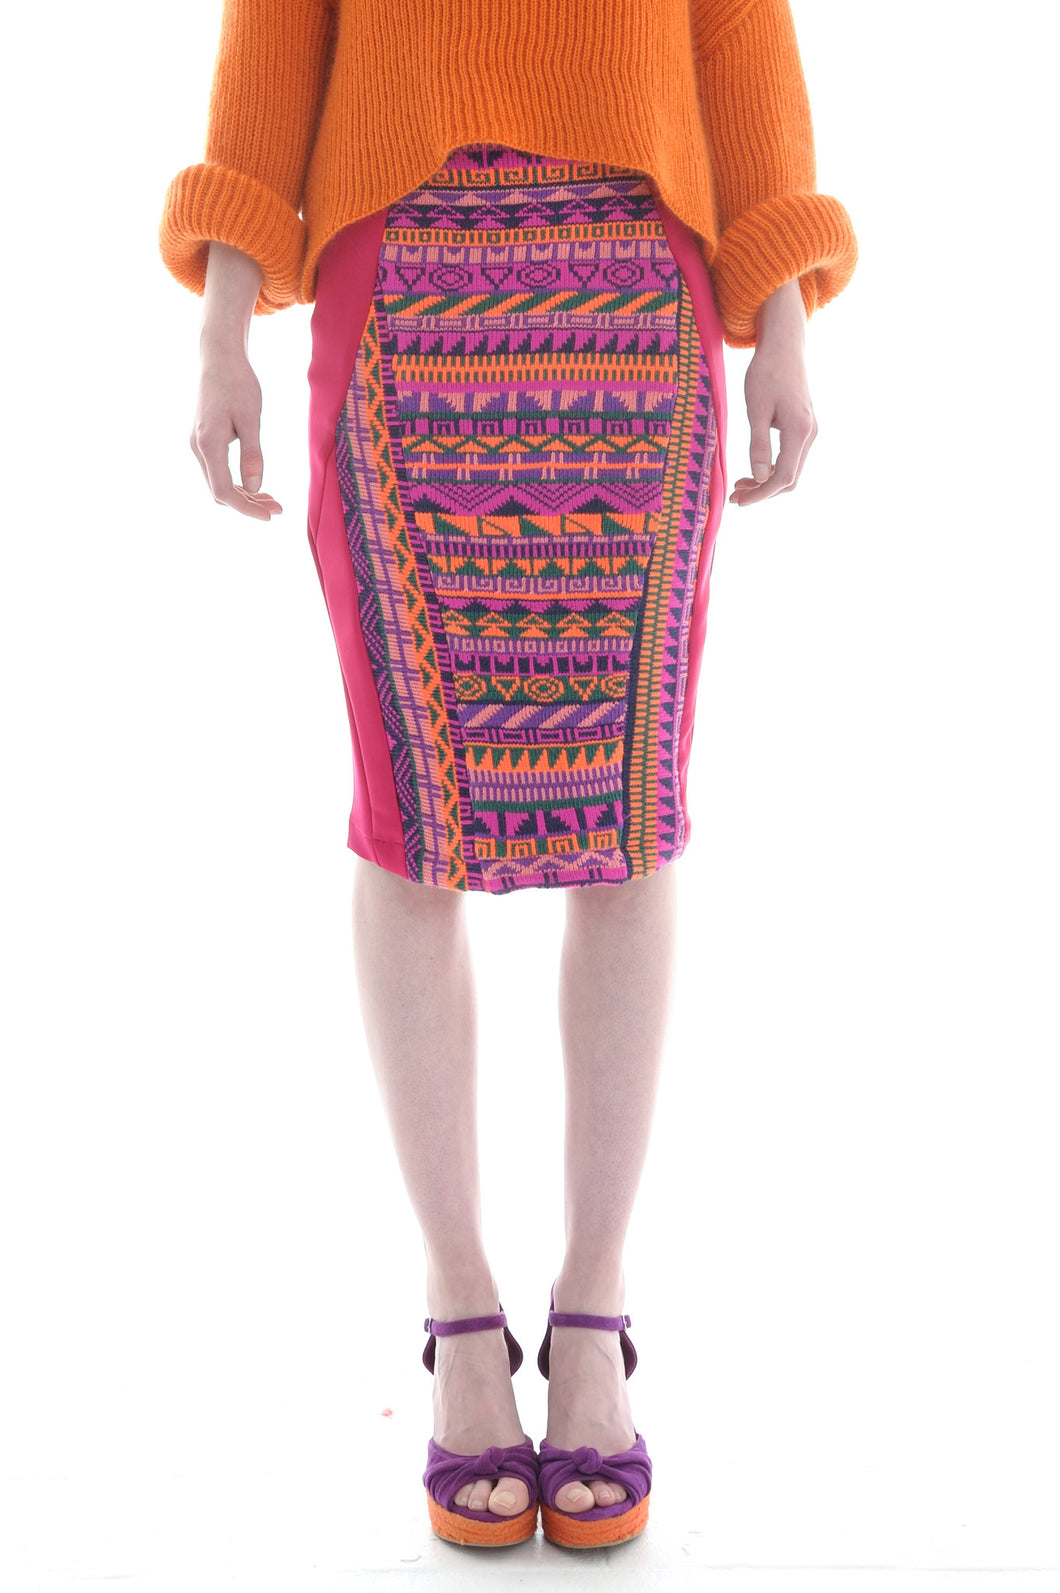 Fair Isle Pencil Skirt in Pink, Orange, and Purple Geometric Pattern - Skirt - Megan Crook